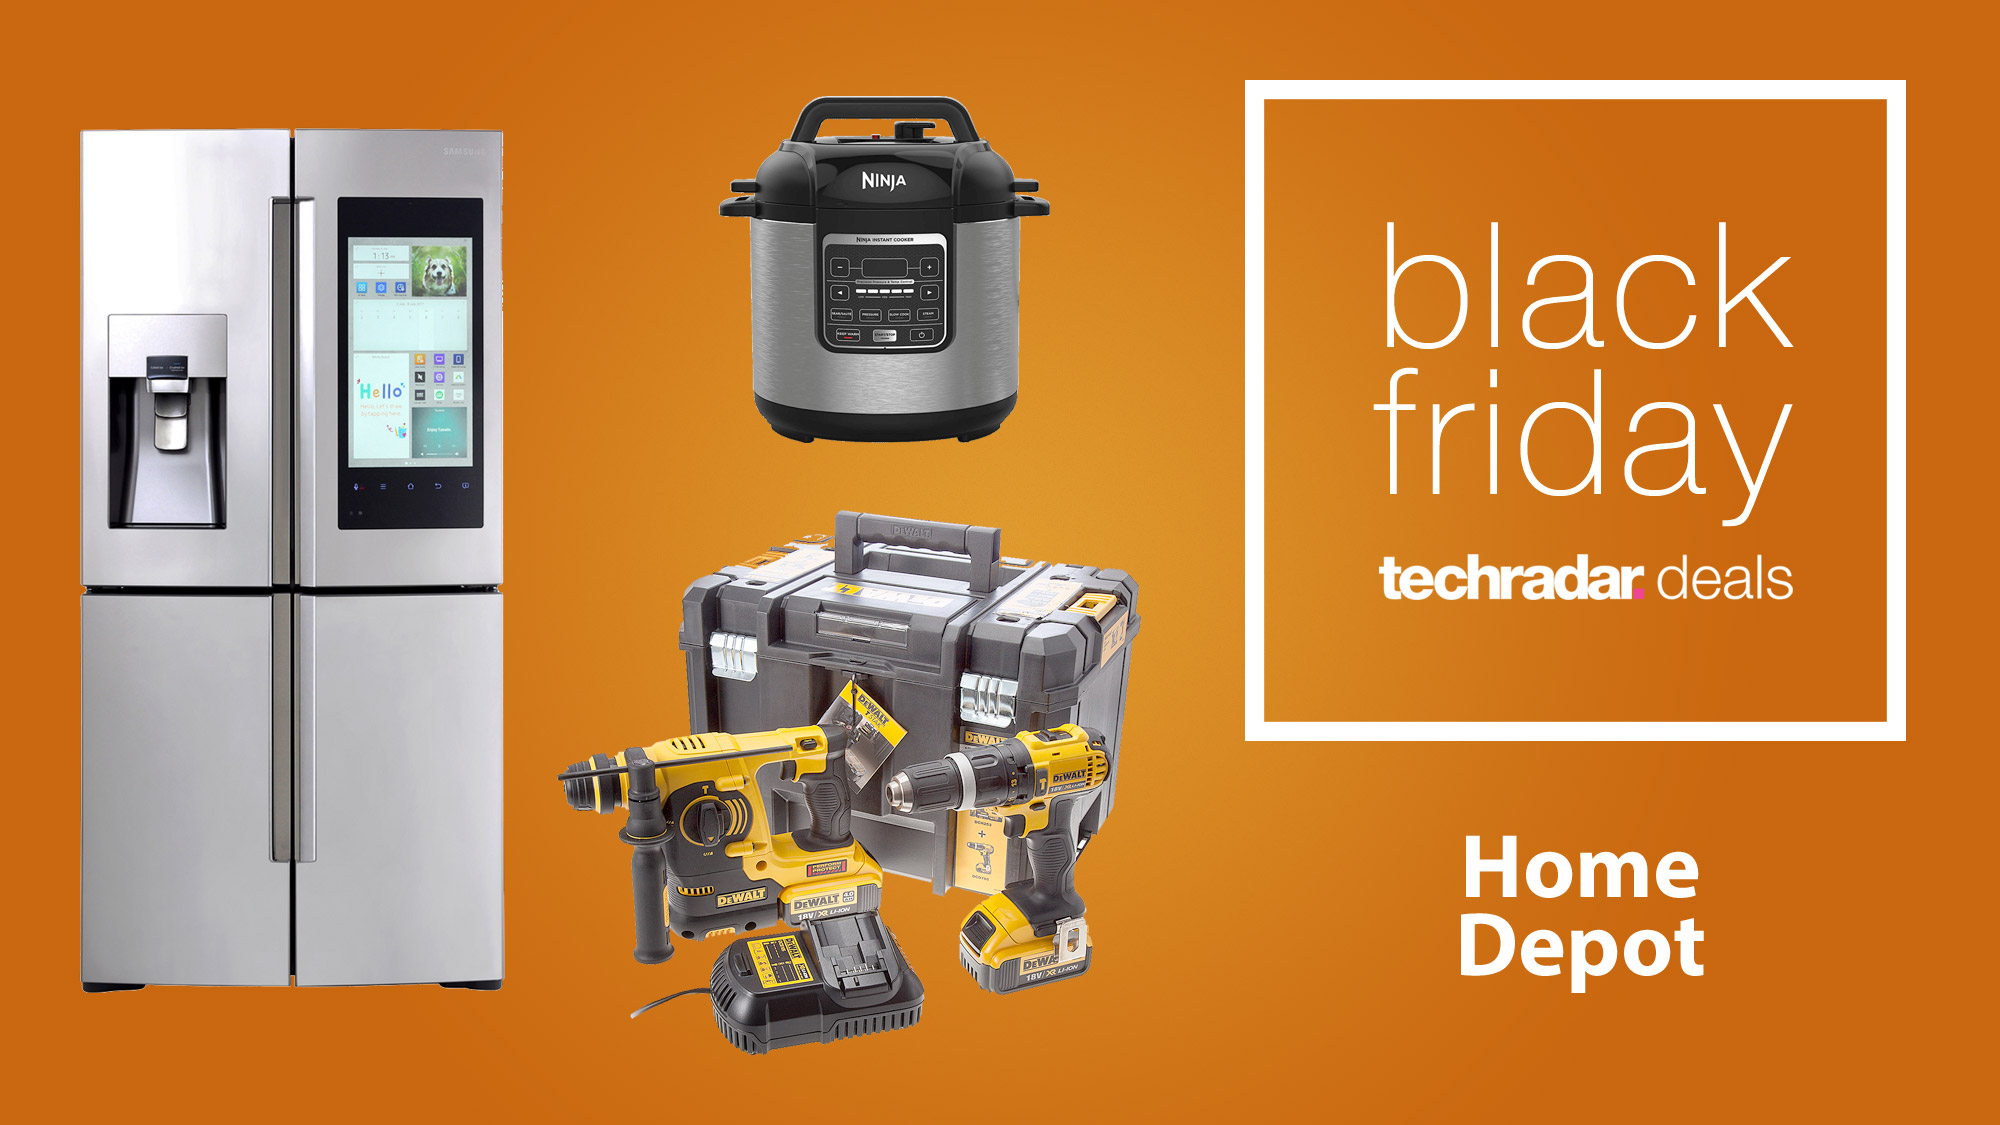 Home Depot Black Friday Deals 2020 The Best Deals For Your Home At The Lowest Prices Of The Season Techradar